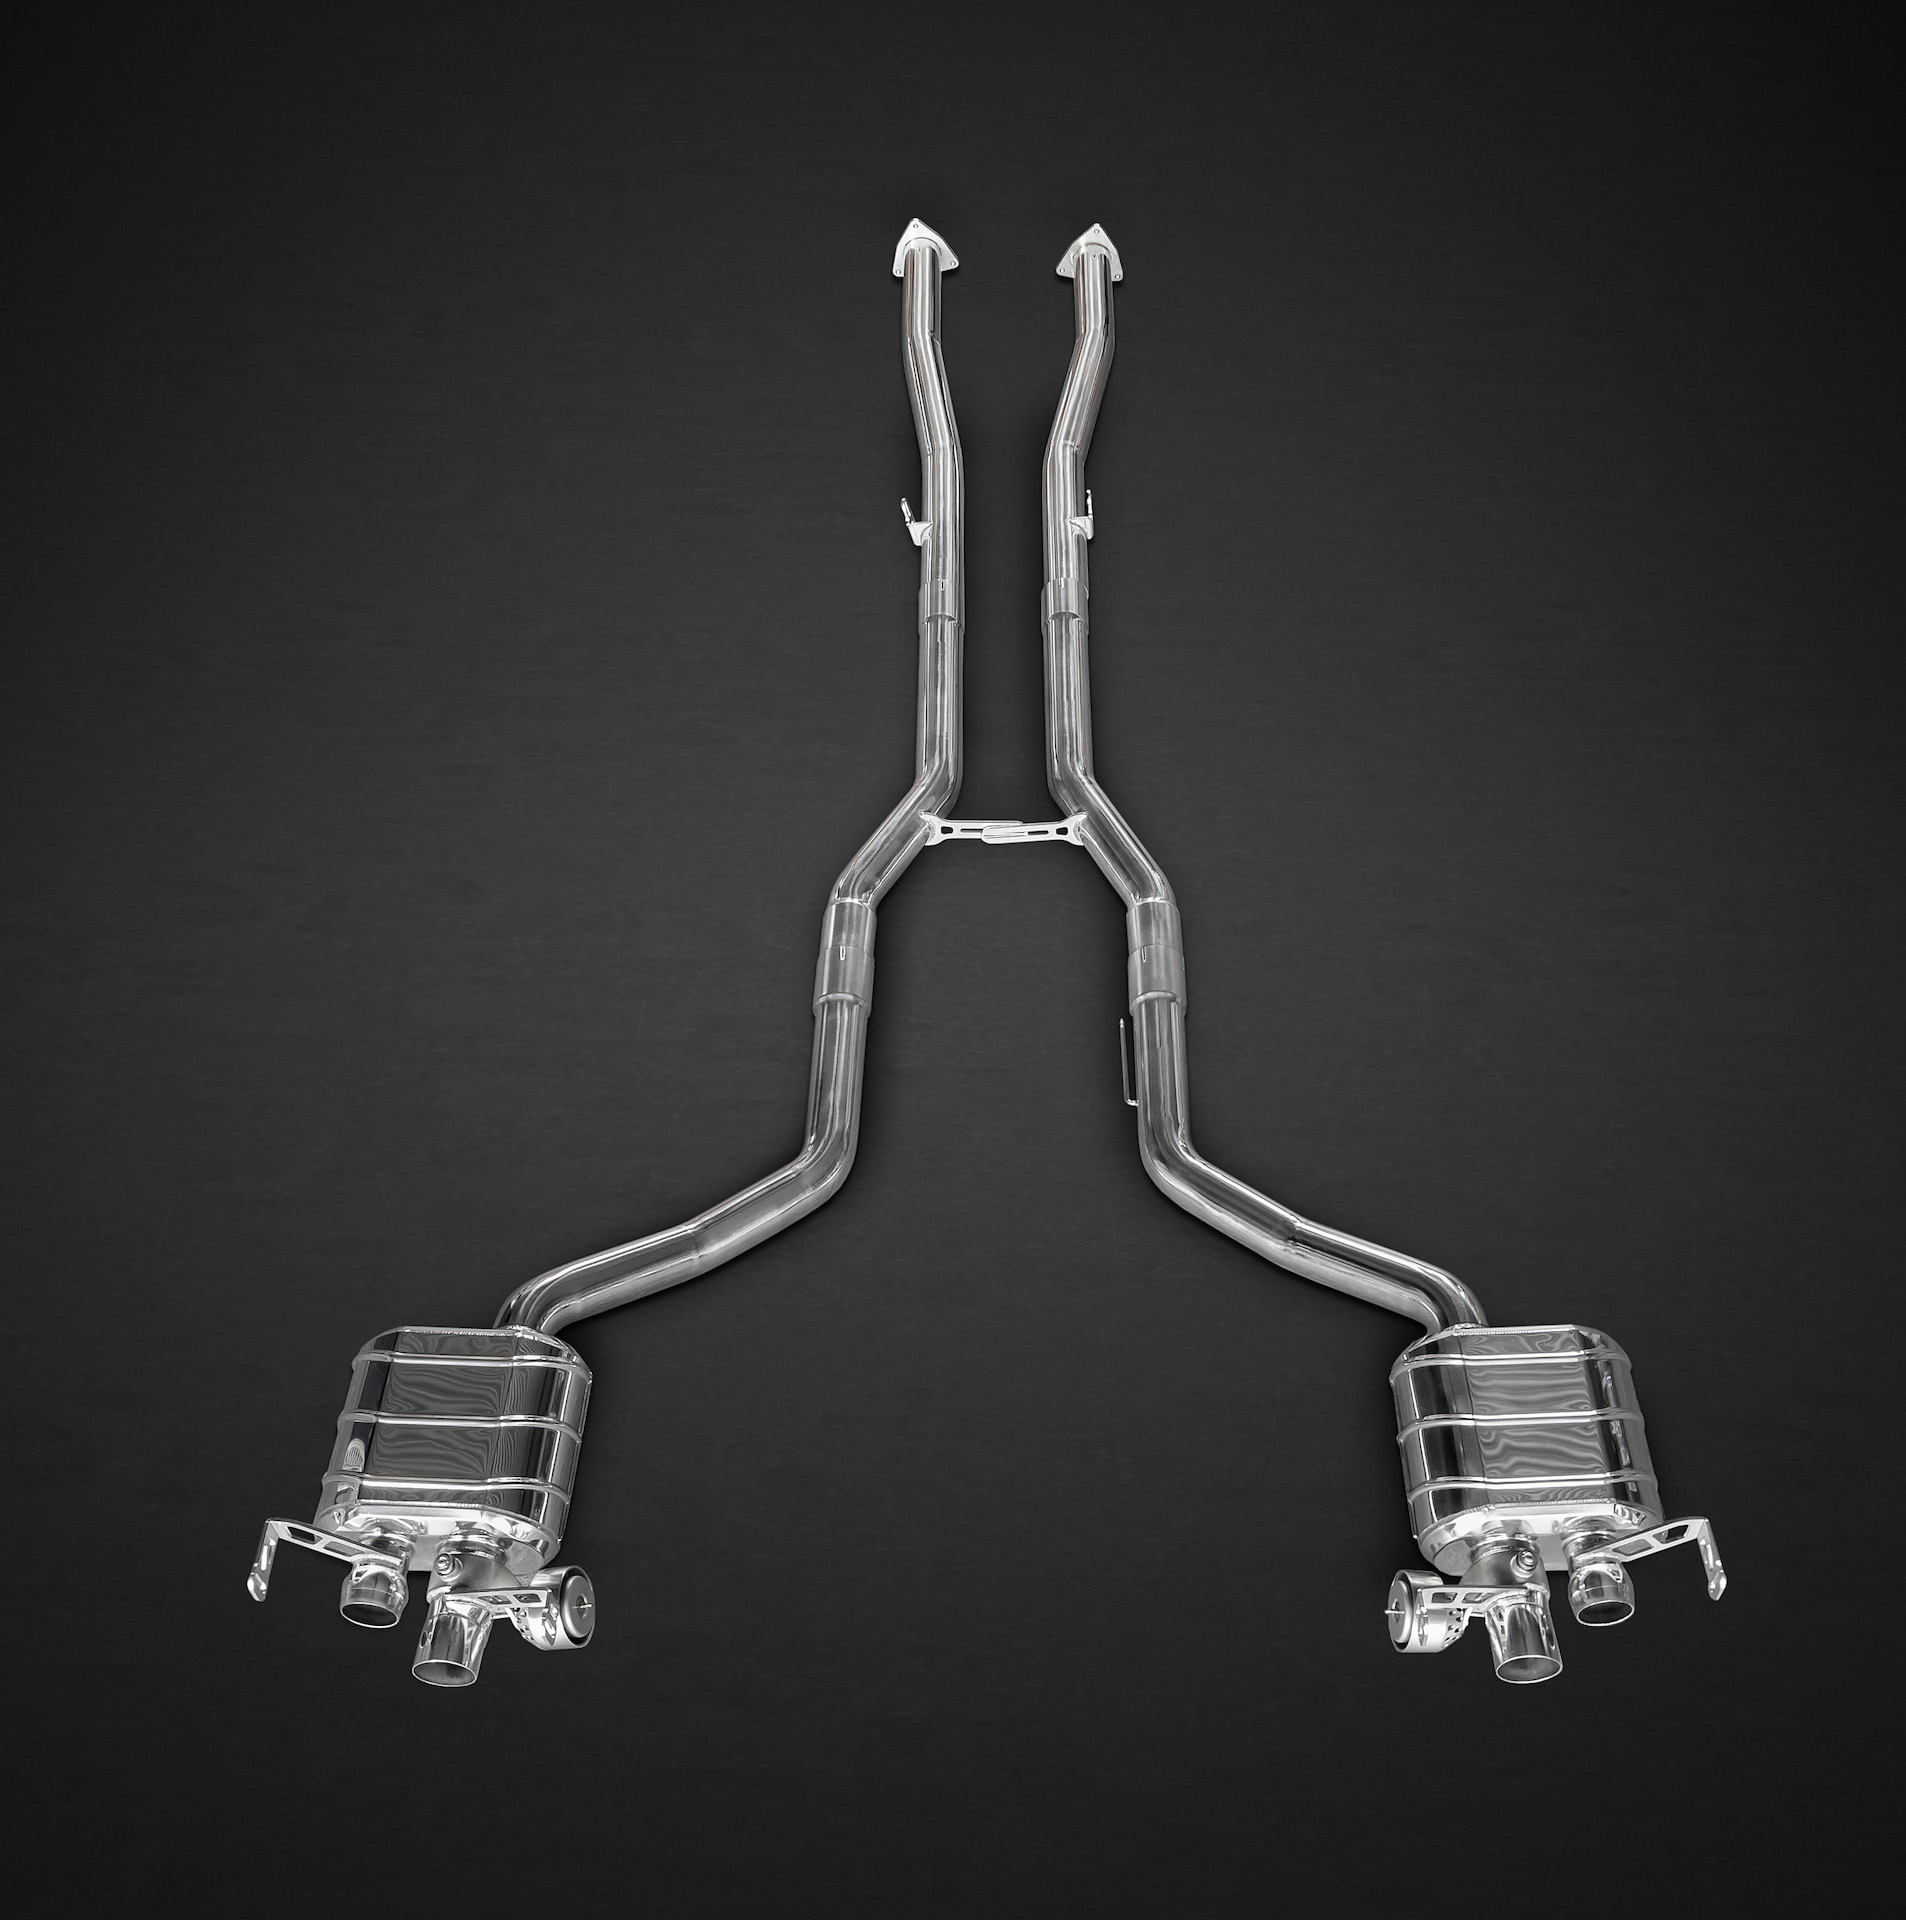 Capristo Bentley Continental GT V8 (S) Valved Exhaust System (No Remote)